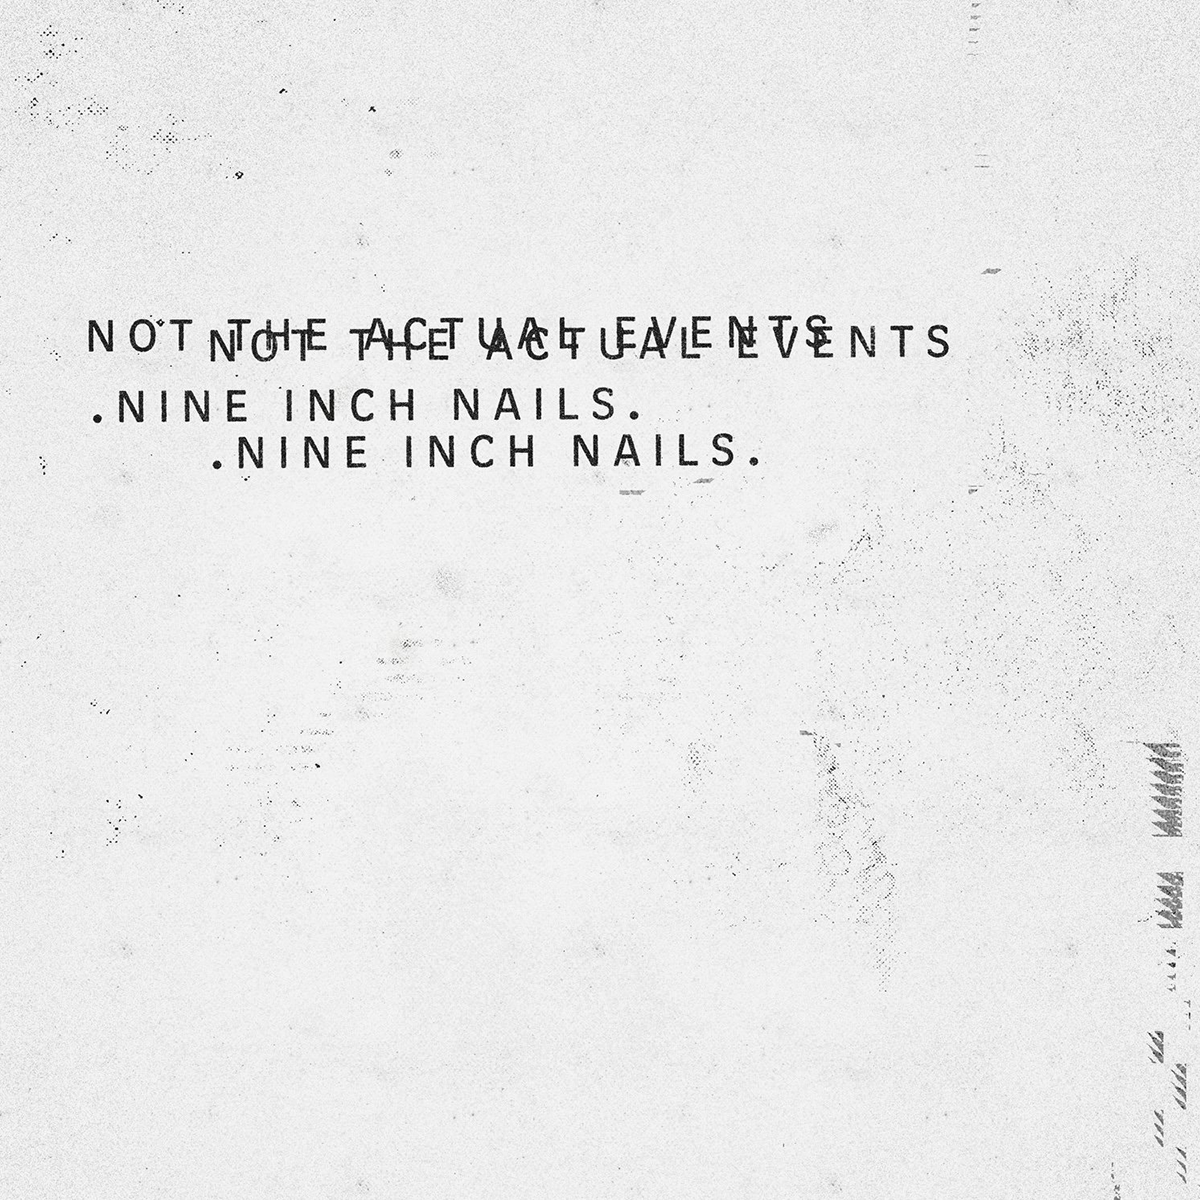 Aural Impressions: Nine Inch Nails, Not The Actual Events